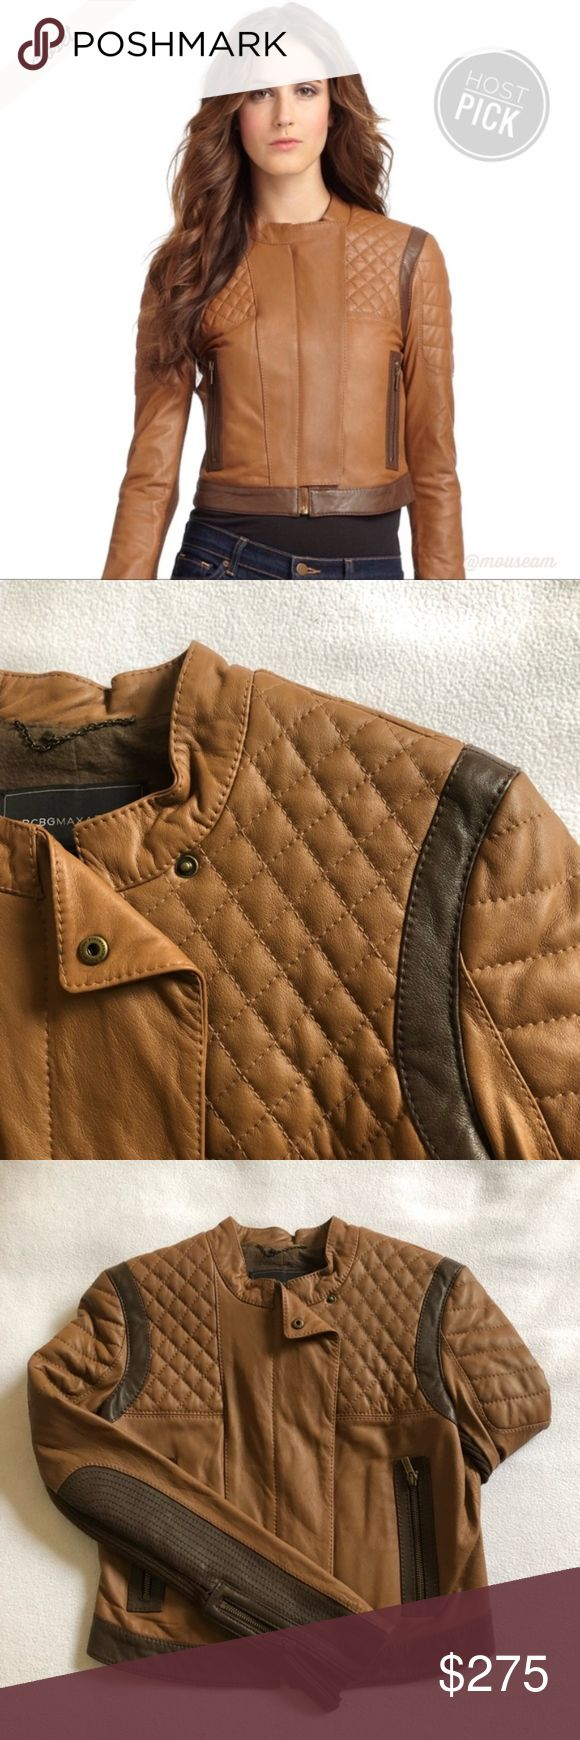 [BCBG] Tan Leather Motorcycle Jacket NWOT NWOT! BCBGMAXARIA Josh Leather Motorcycle Jacket - Quilted panels at shoulders - Zipper pockets; Front zipper closure - Tonal top stitching and panel seaming - Material: 100% lamb leather; 100% polyester lining - Color: Dark Bisque - Condition: NWOT - Size: S BCBGMaxAzria Jackets & Coats